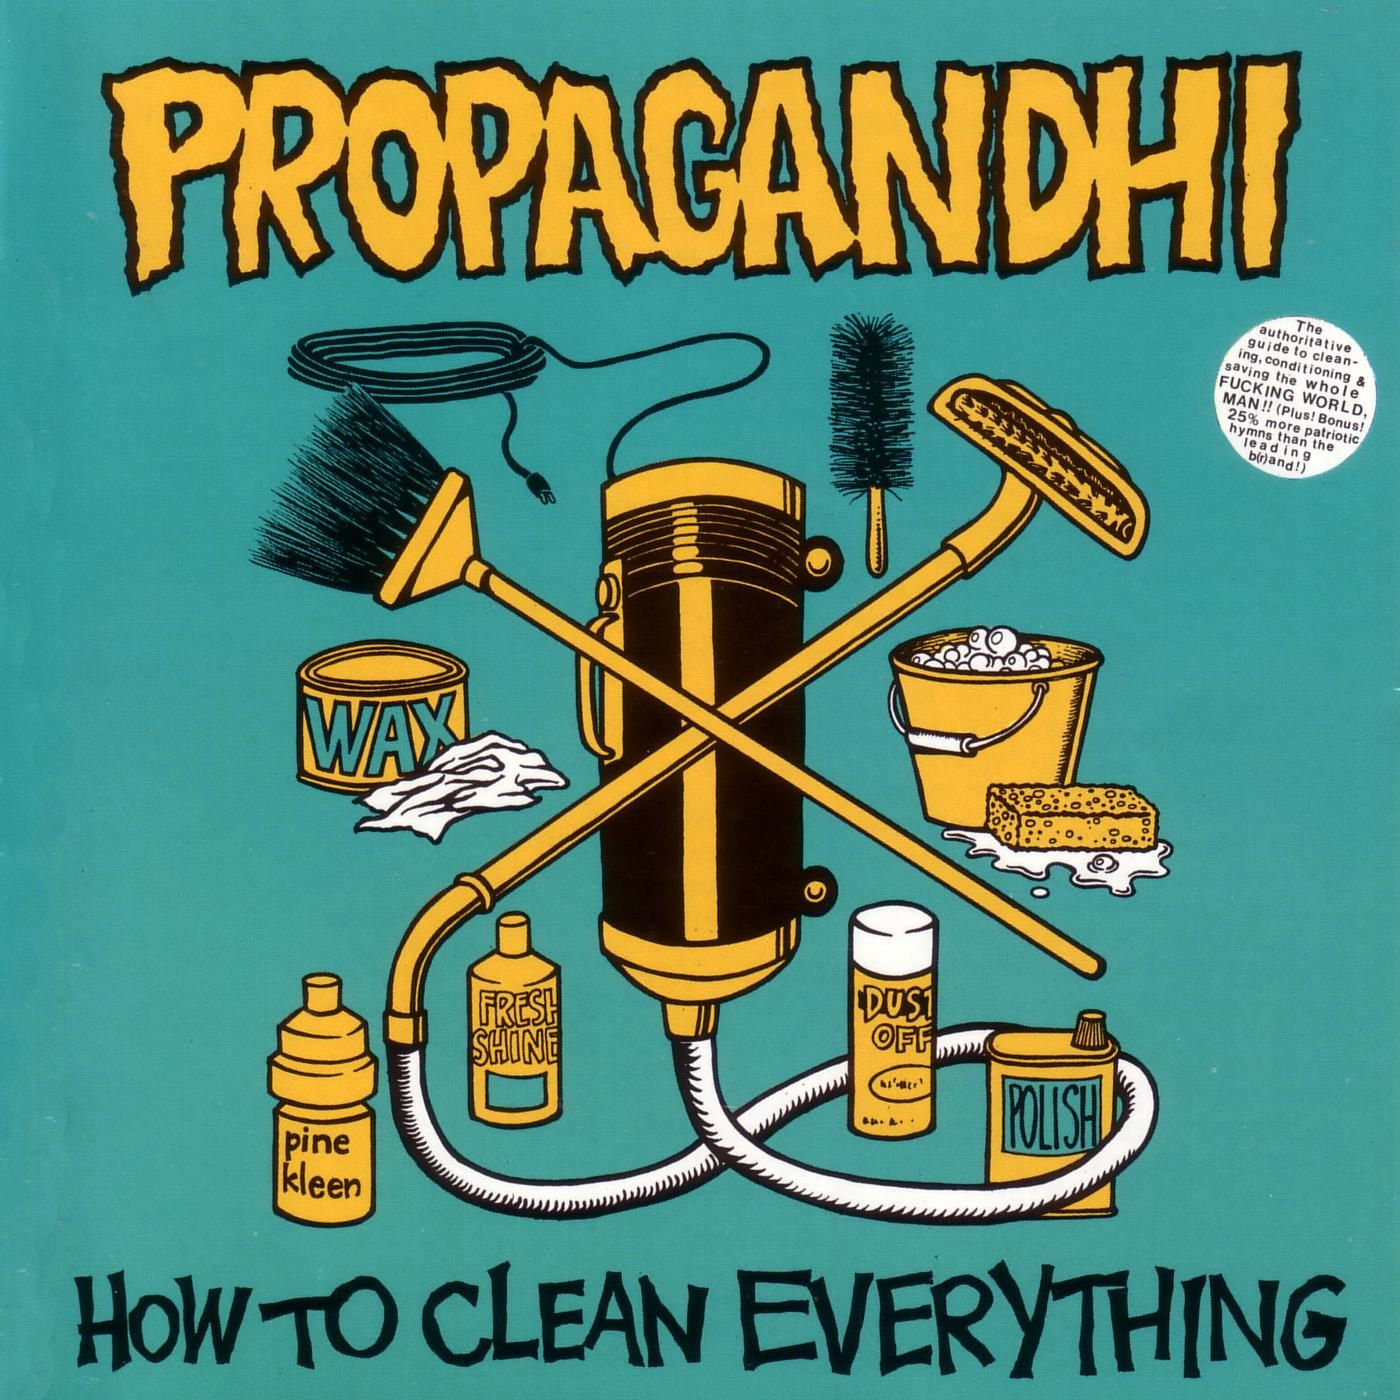 how to clean everything propagandhi